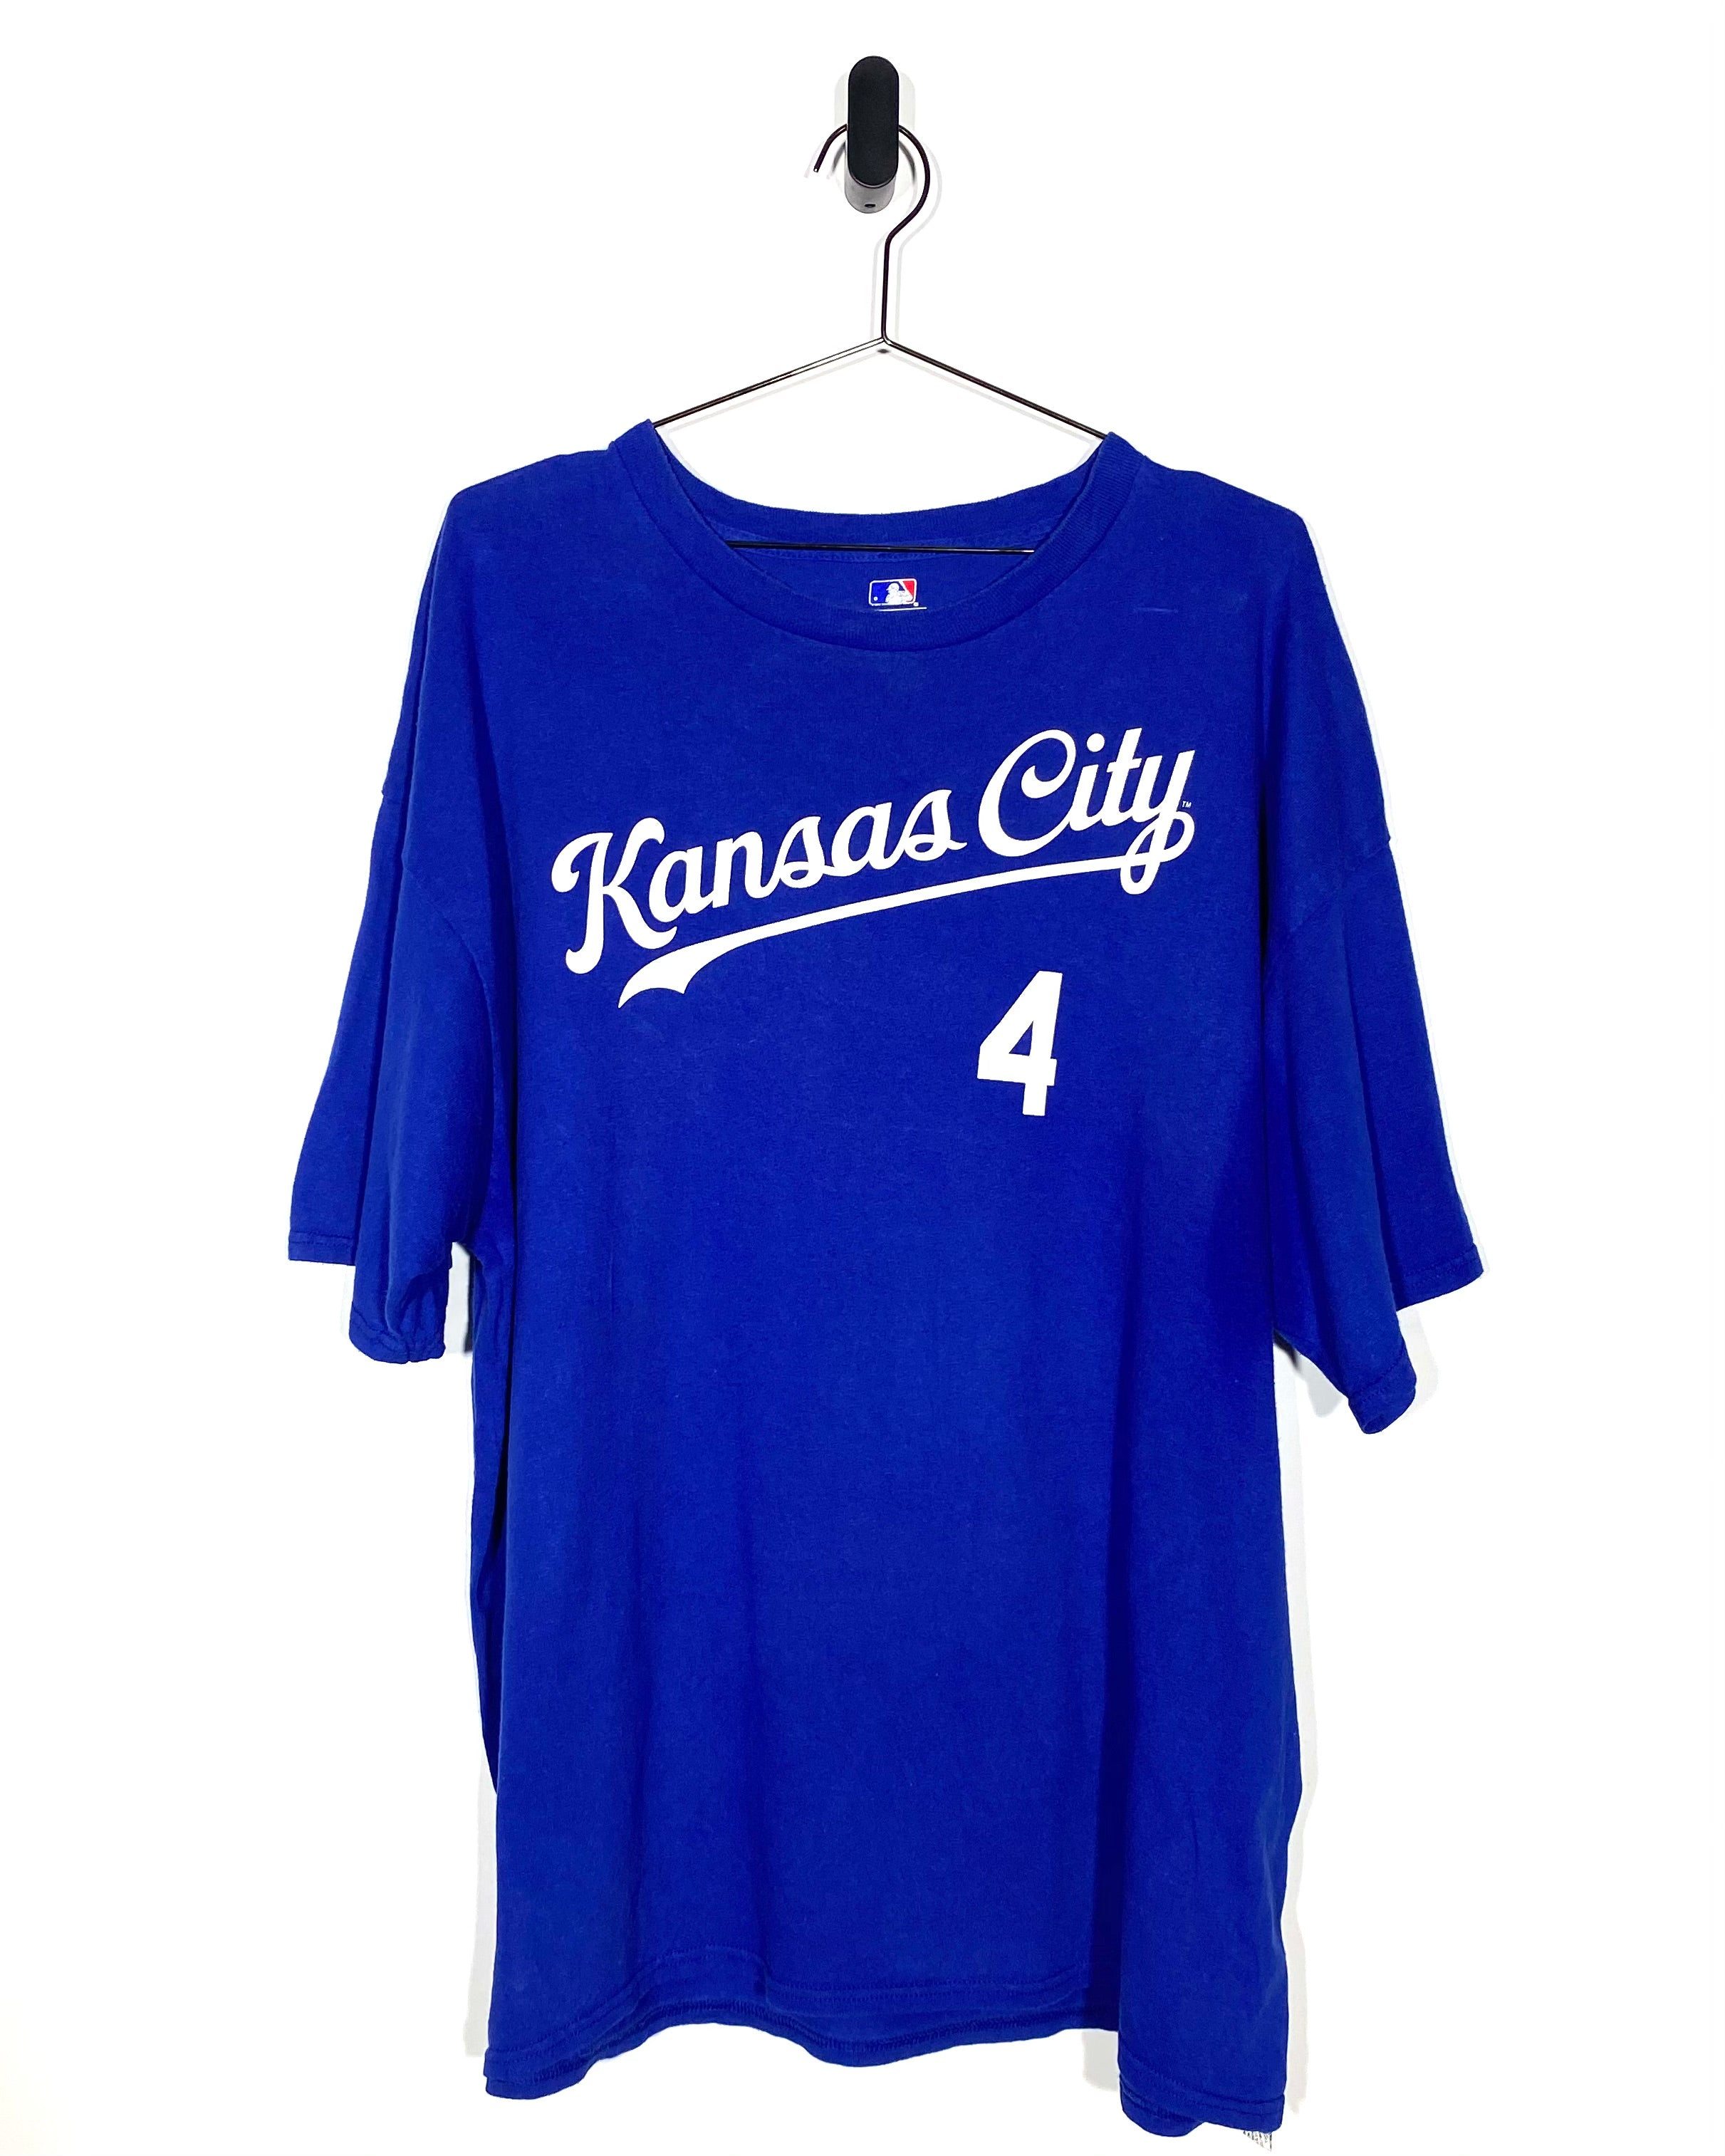 Kansas City Royals Alex Gordon Player Tee 2XL